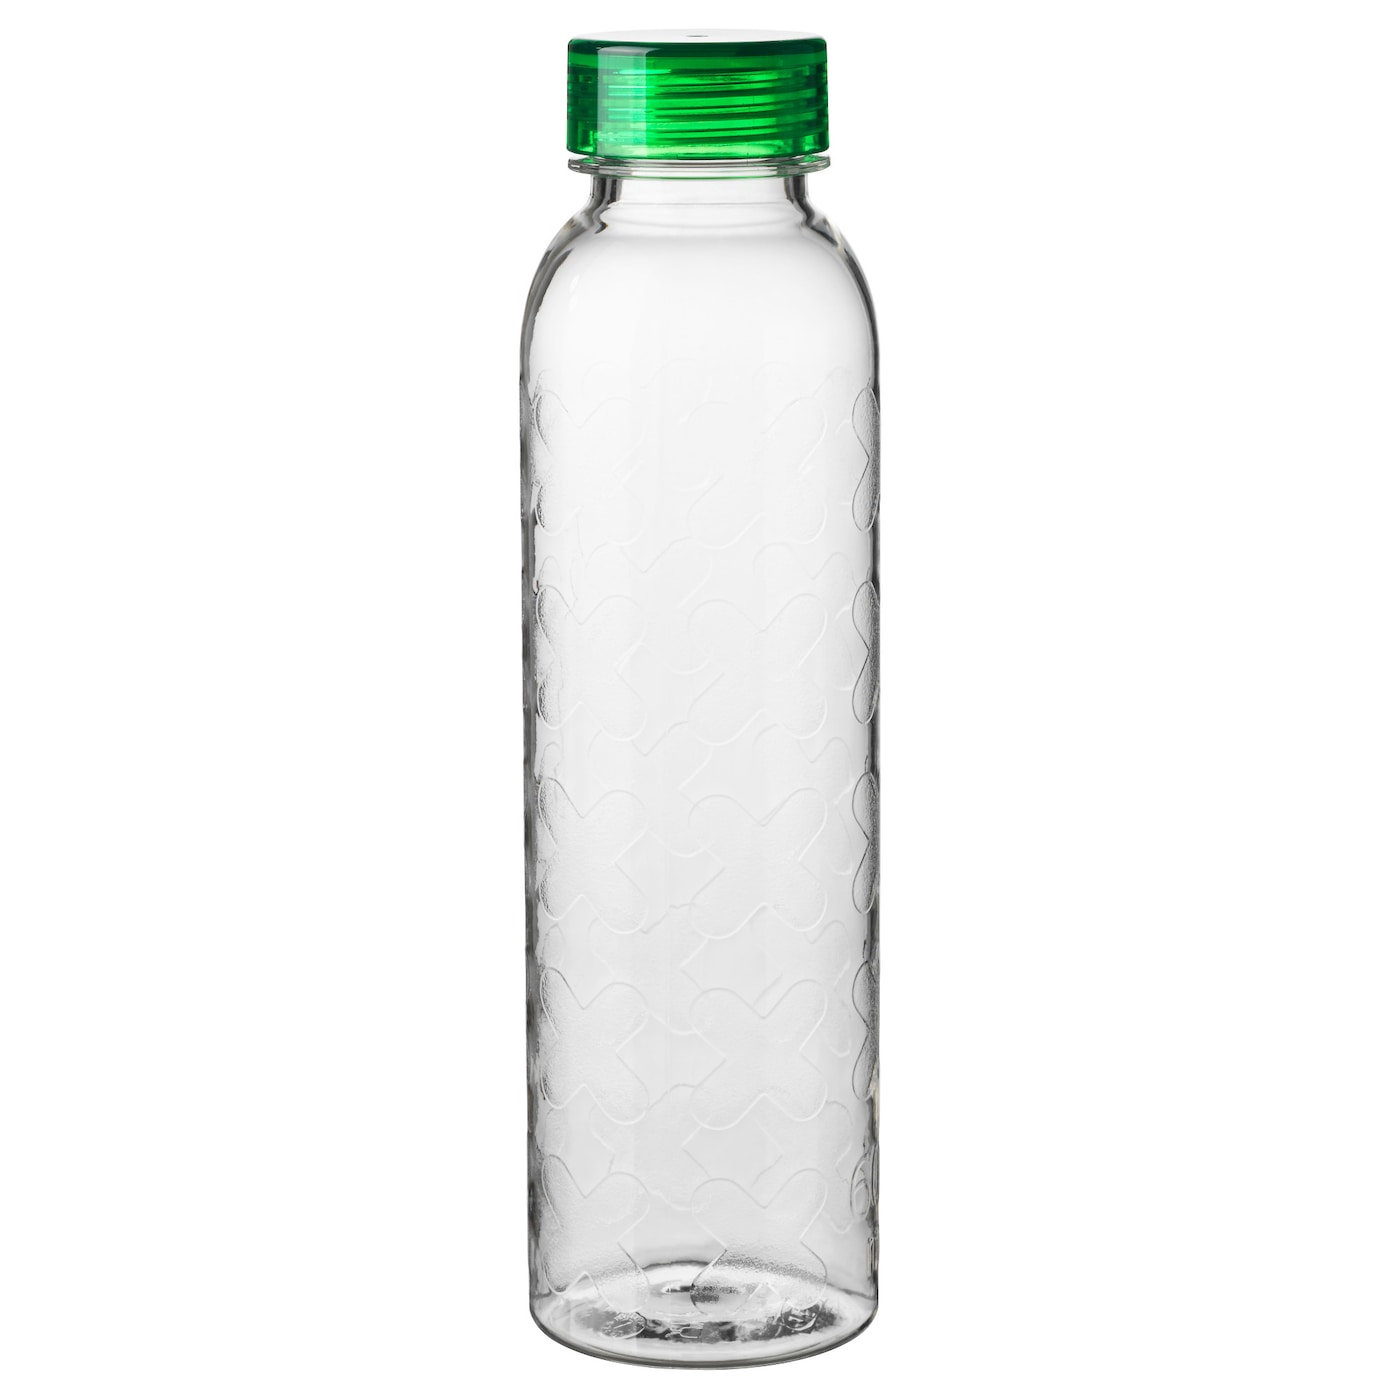 IKEA BEHÅLLARE water bottle You don't risk any spillage, as the bottle is leakproof.